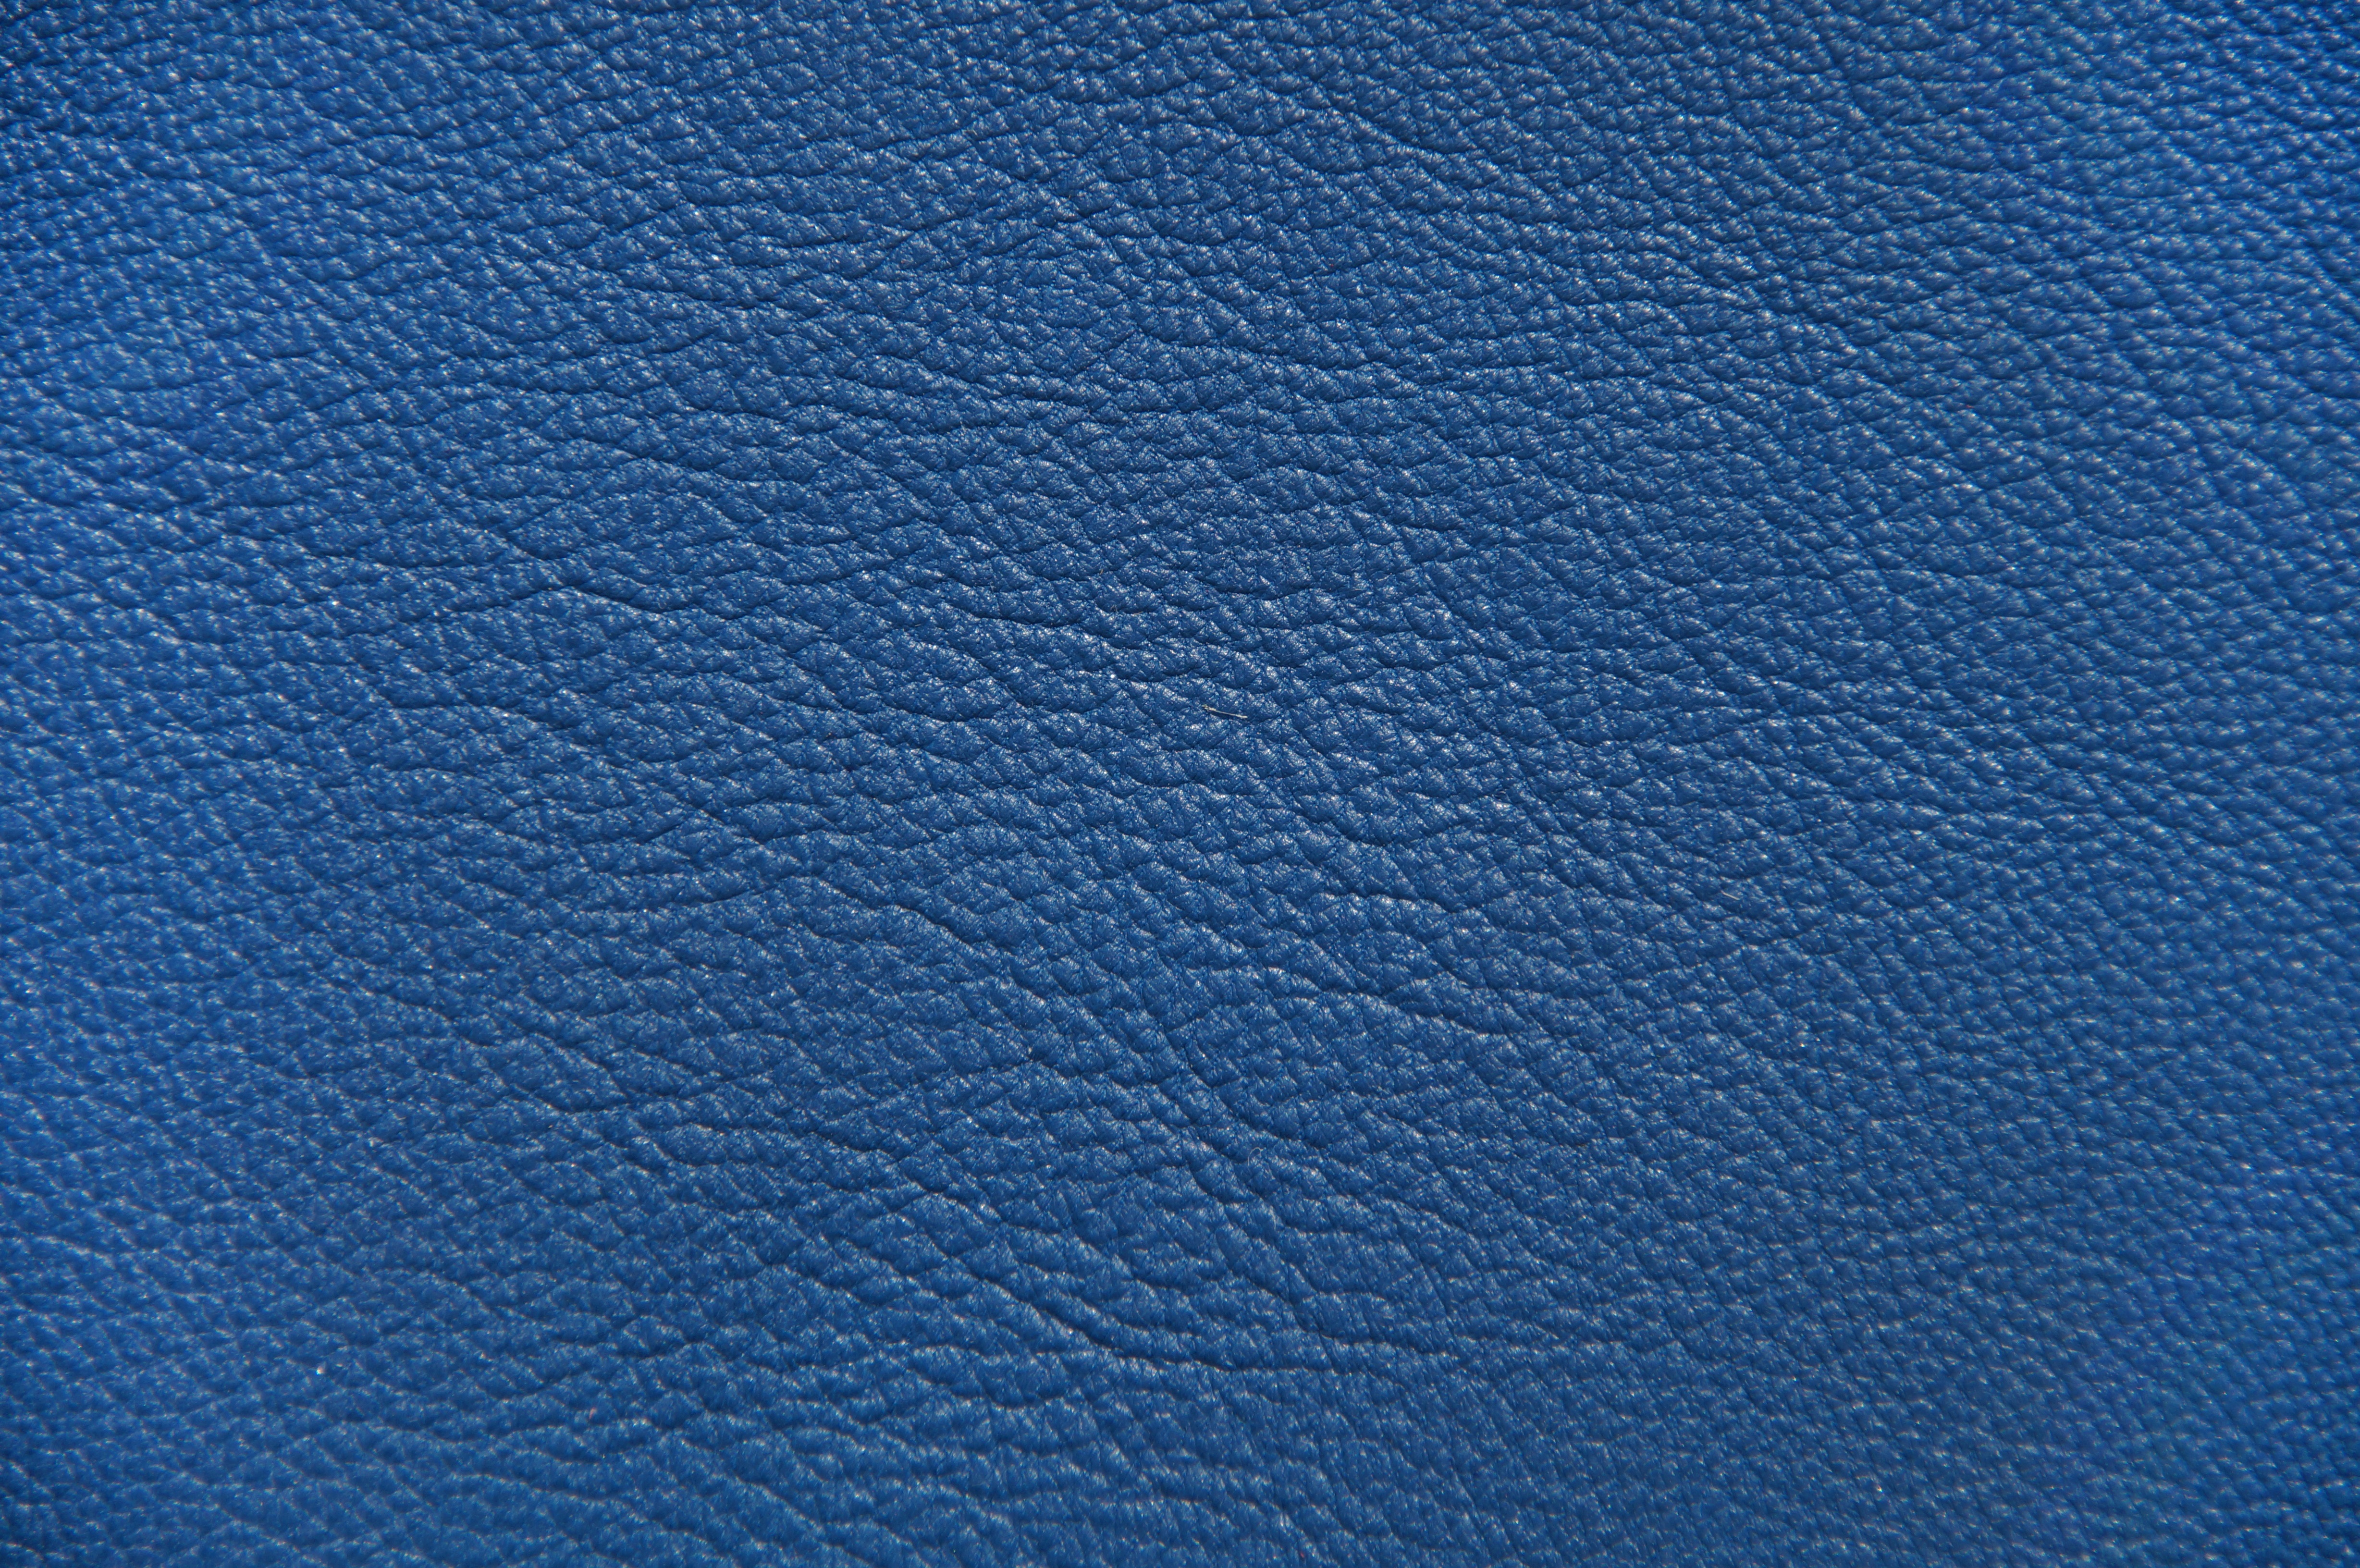 blue leather 5k hd photography 4k wallpapers images